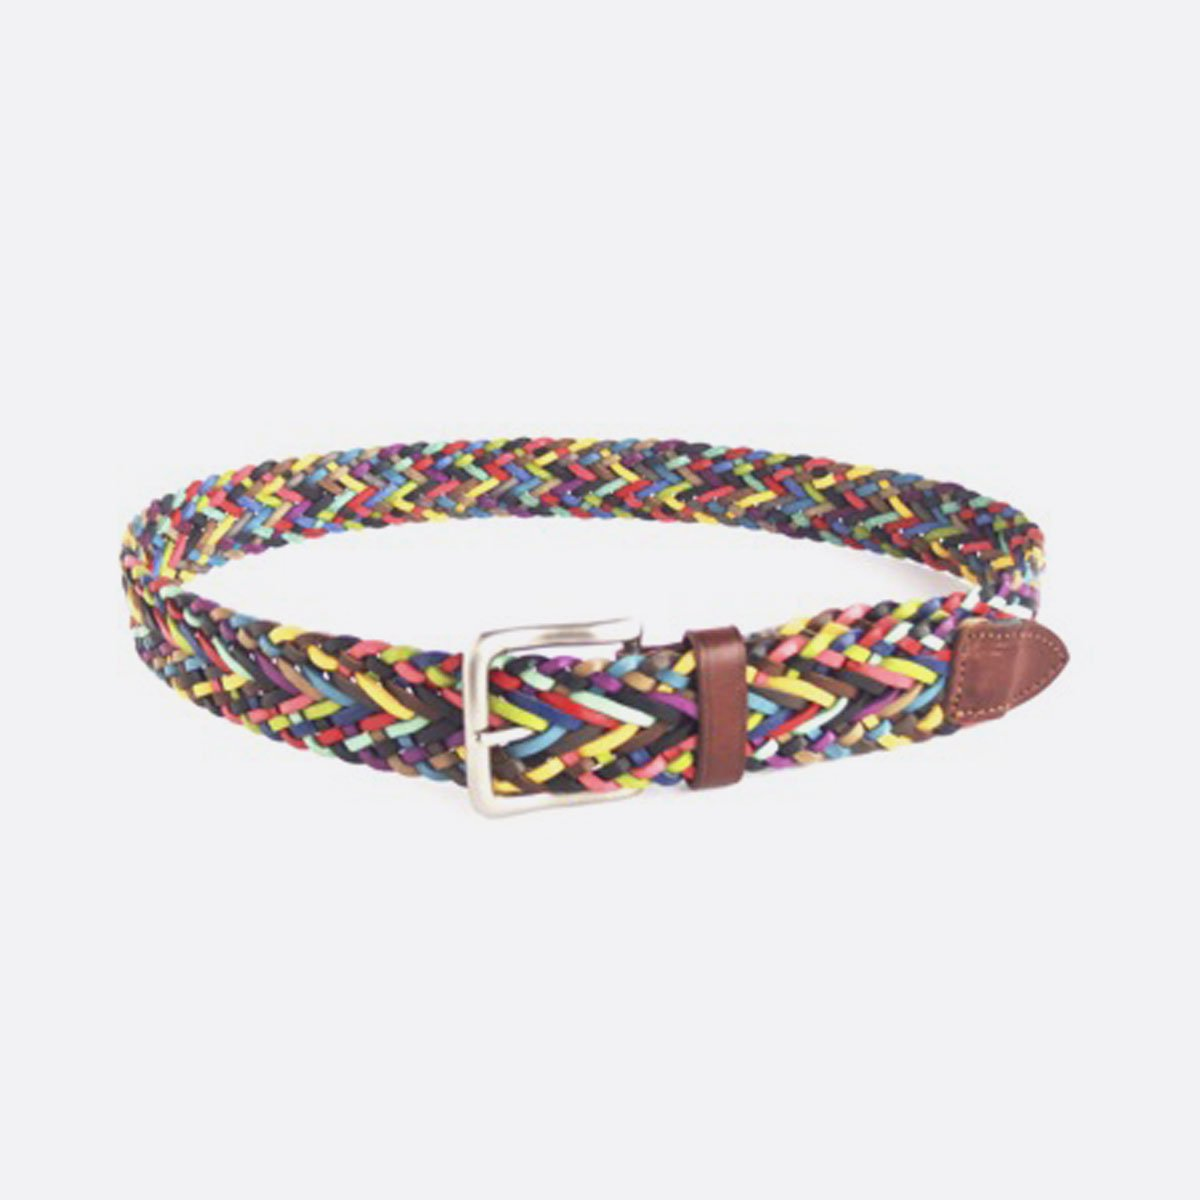 NEPENTHES LONDON MULTI COLOR LEATHER MESH BELT(MULTI)